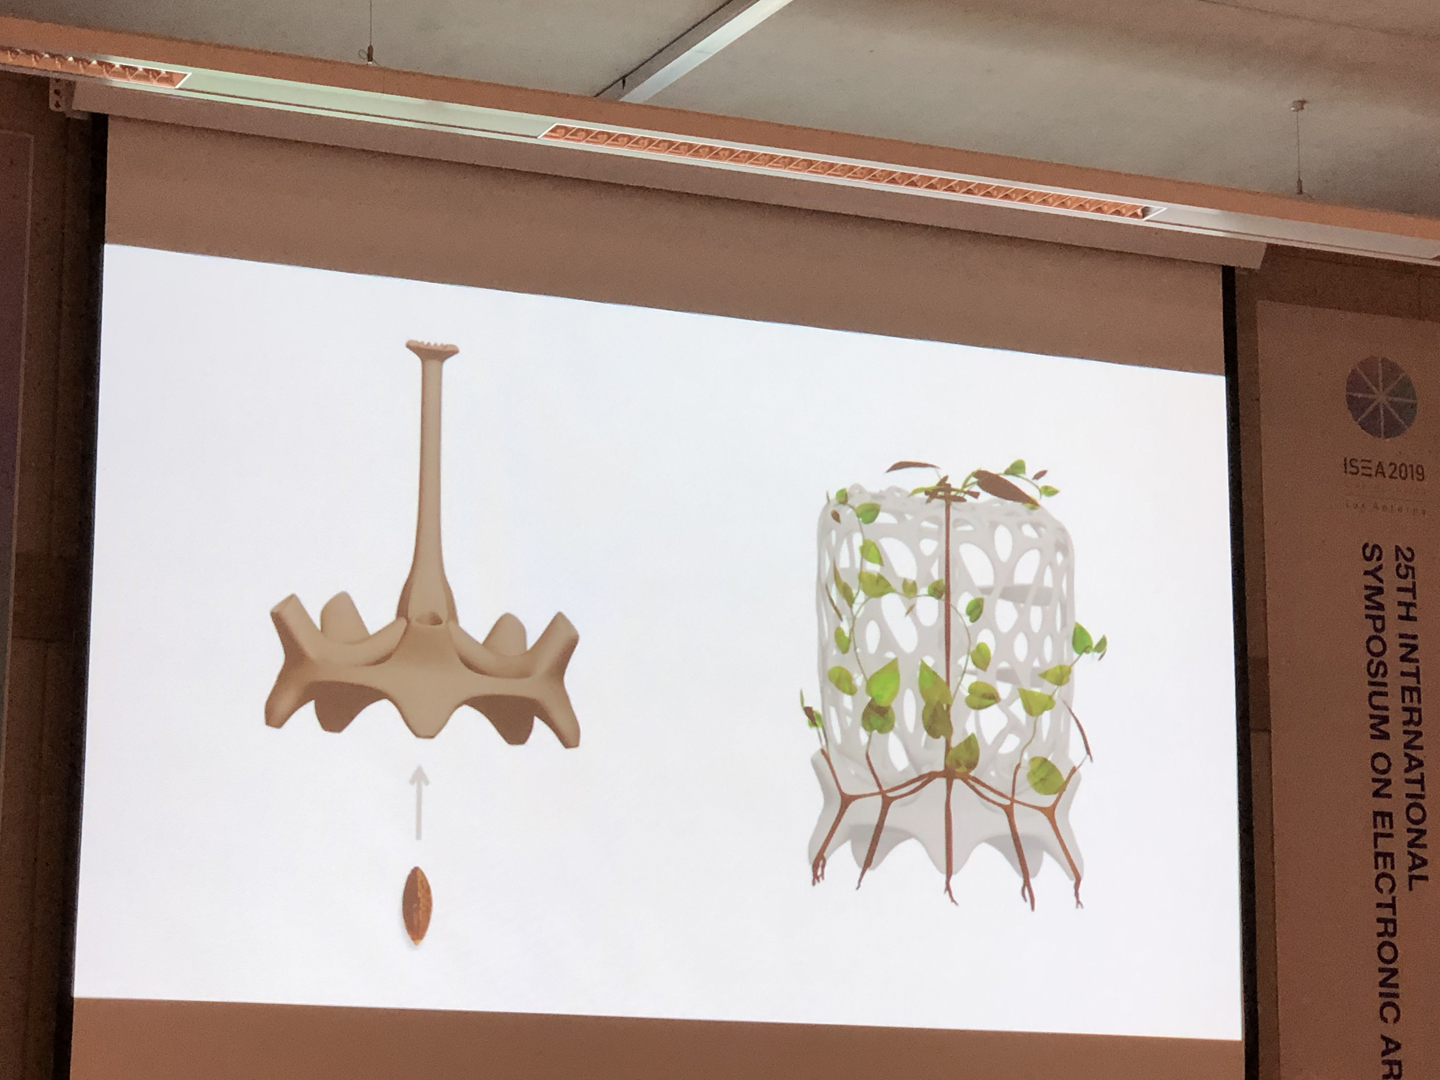 ©ISEA2019: 25th International Symposium on Electronic Art, Zane Cerpina, Plant Based Bio-Drone for Environmental Monitoring in The Amazon